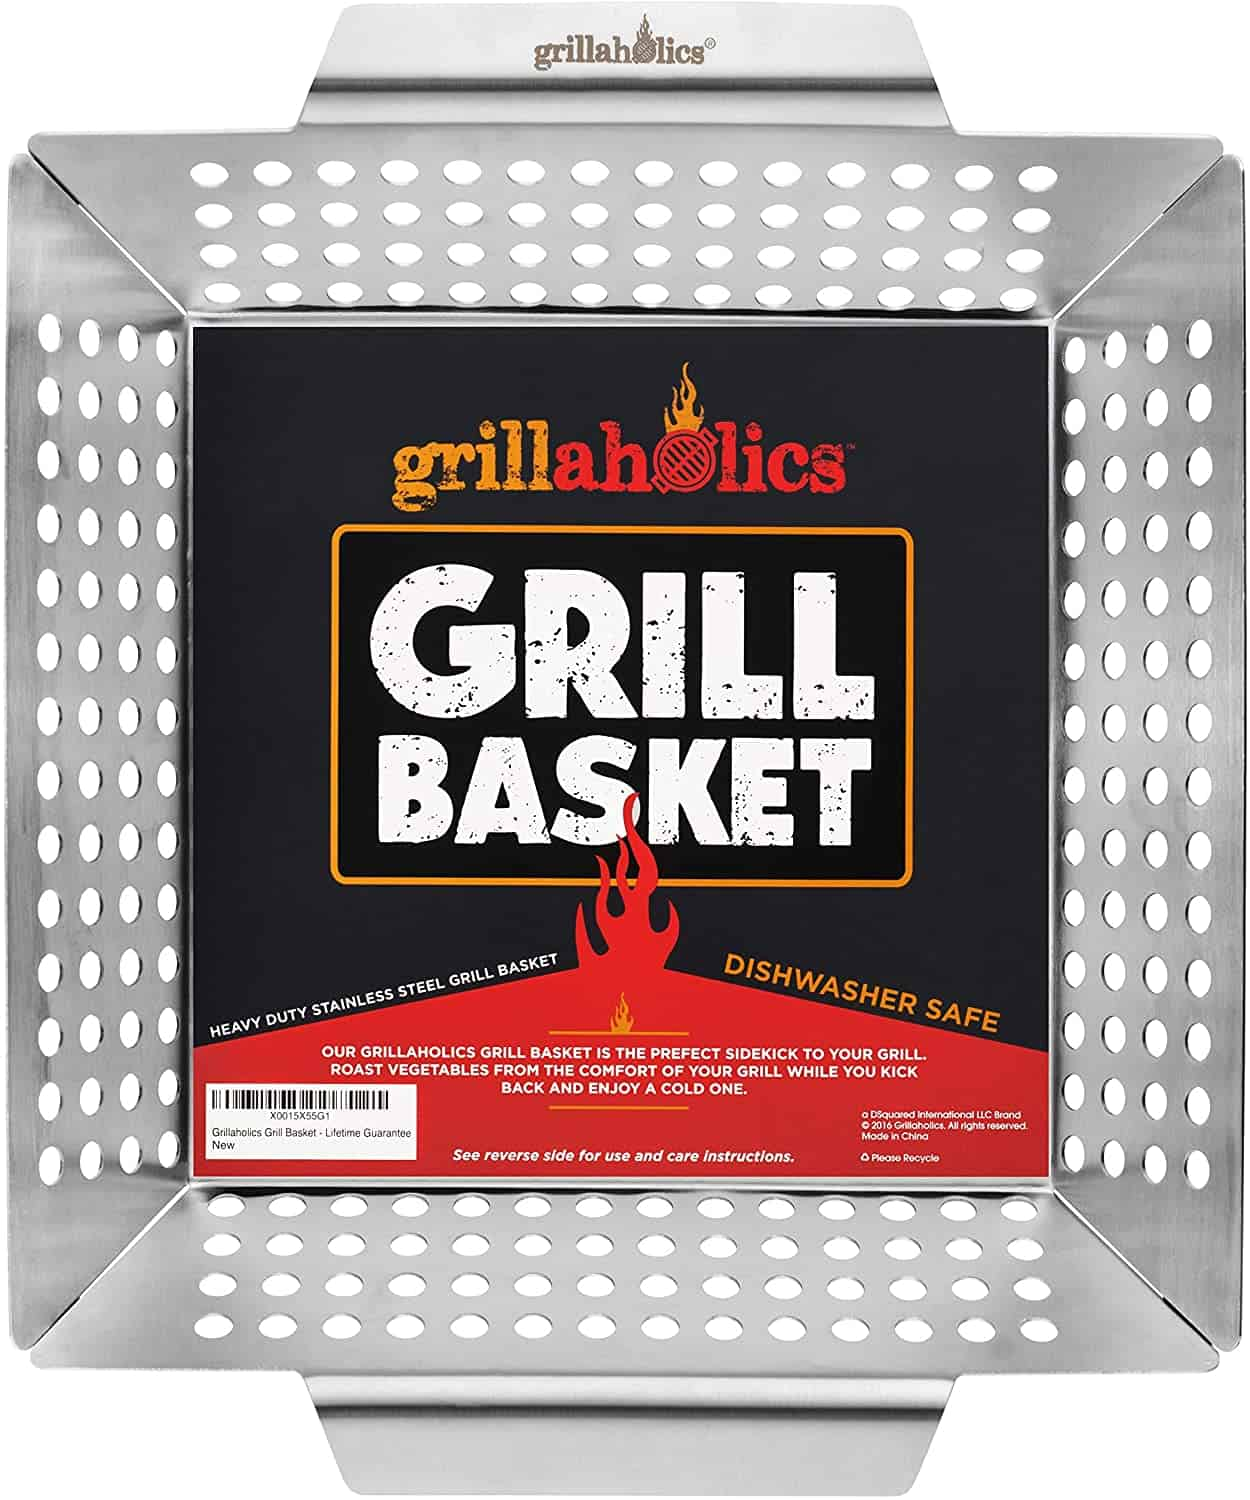 Best long-term investment grill basket- Grillaholics Heavy Duty Grill Basket